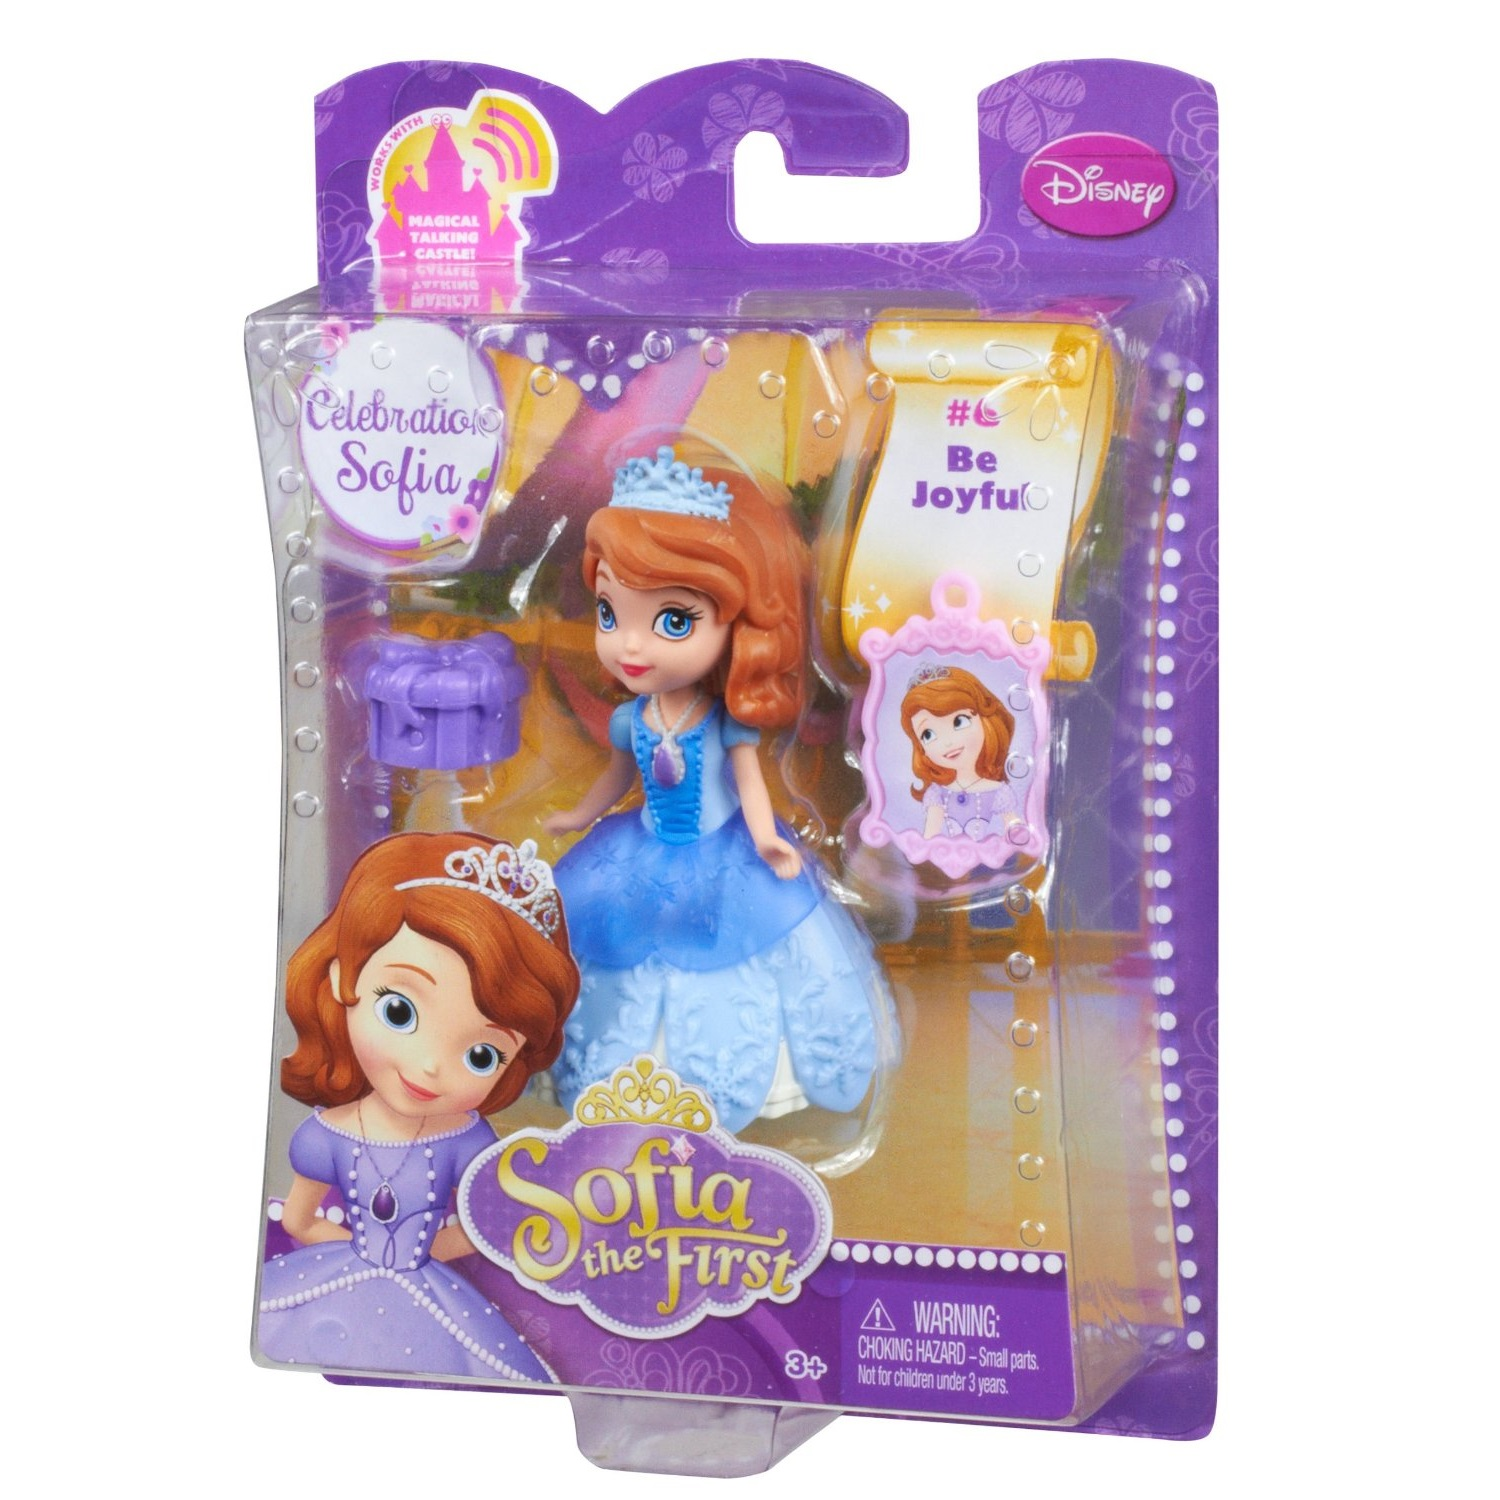 Búp bê thời trang Sofia  (Disney Sofia the First in Holiday Fashion Doll)